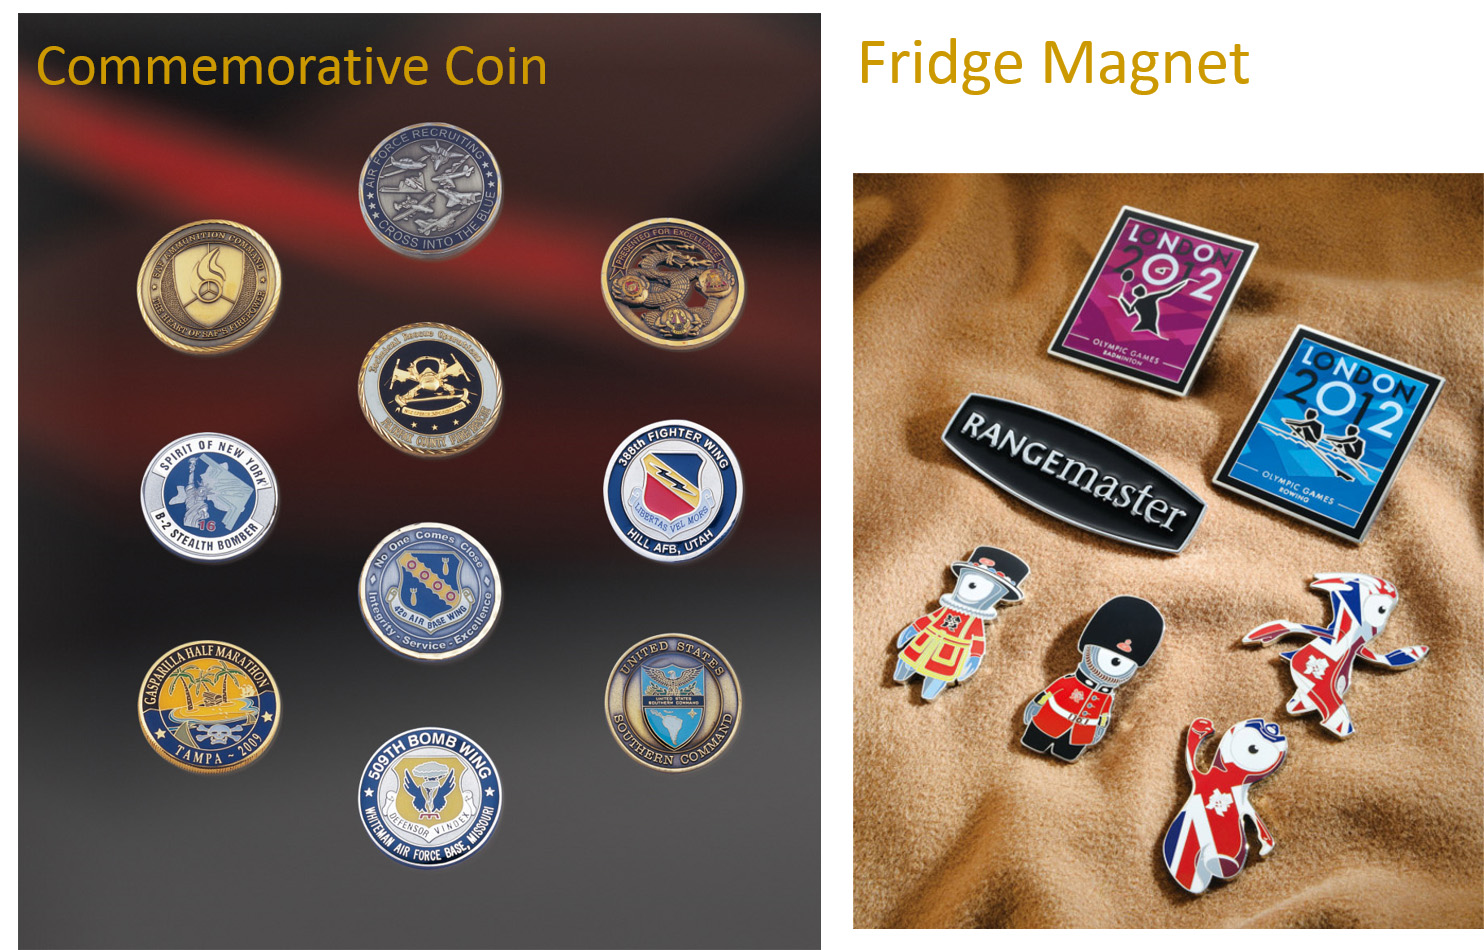 Commemorative Coins and Fridge Magnets